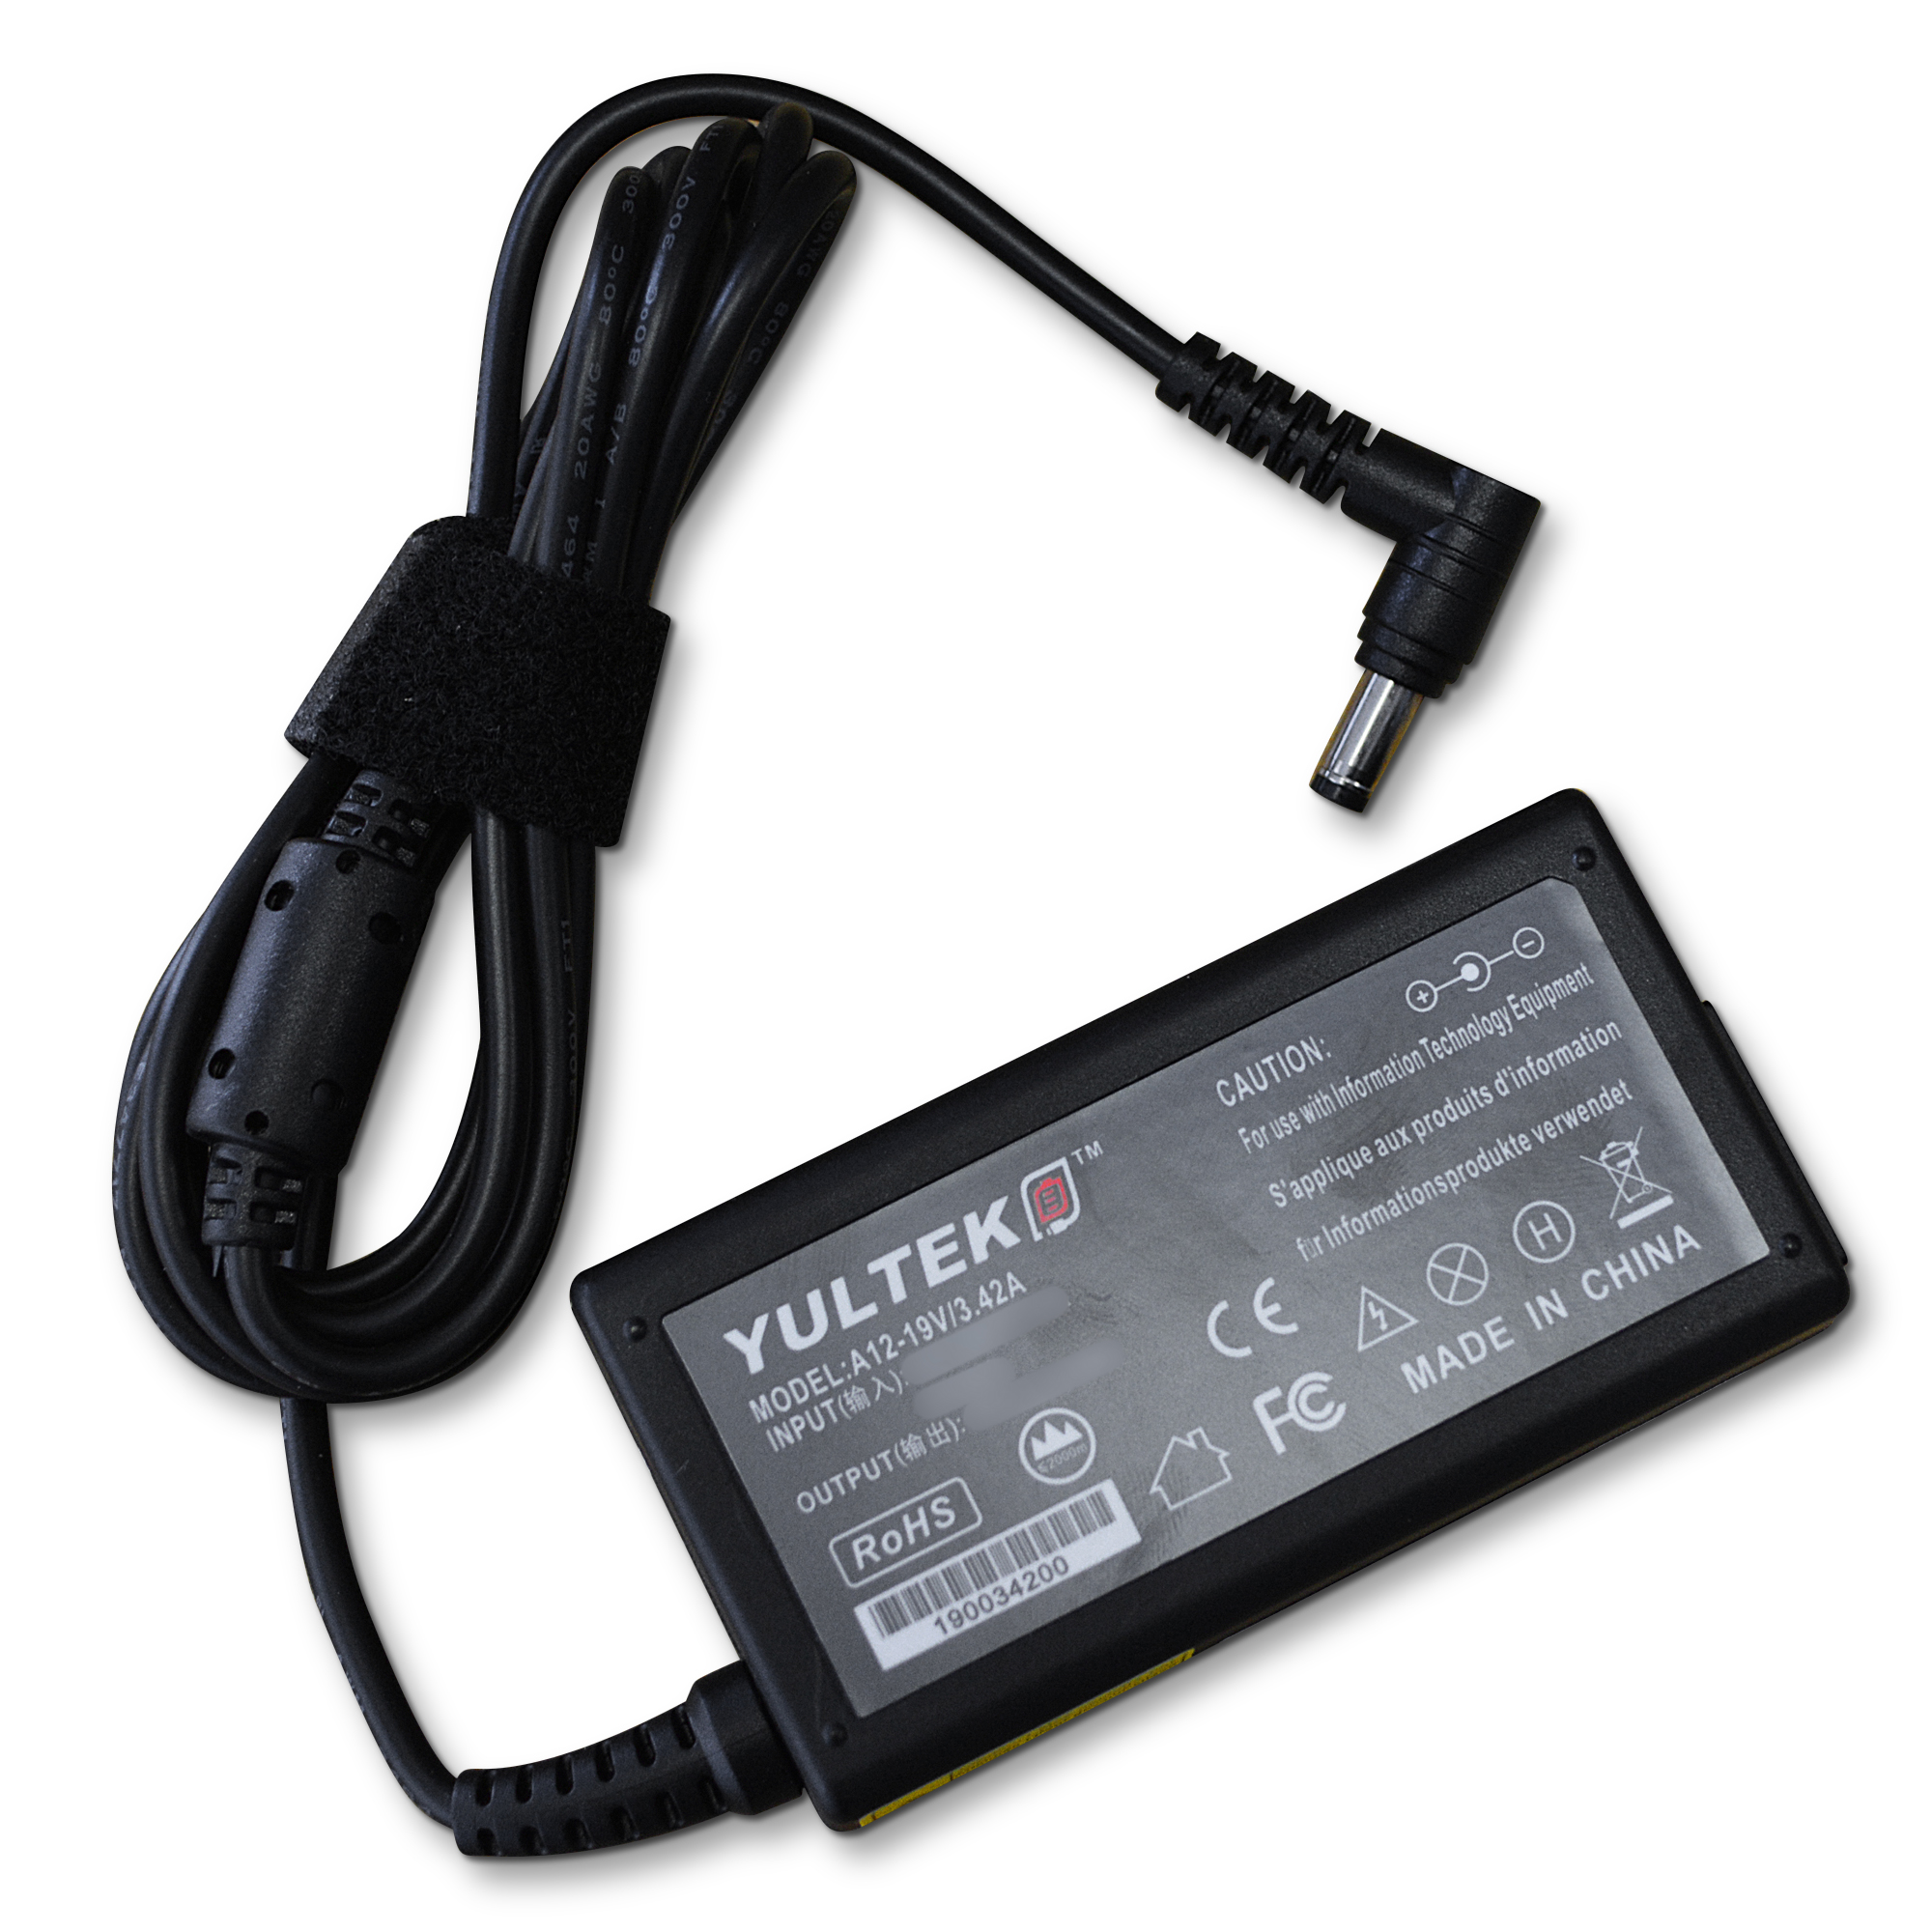 Fujitsu-Siemens Part Number S26113-E519-V15 Laptop Charger